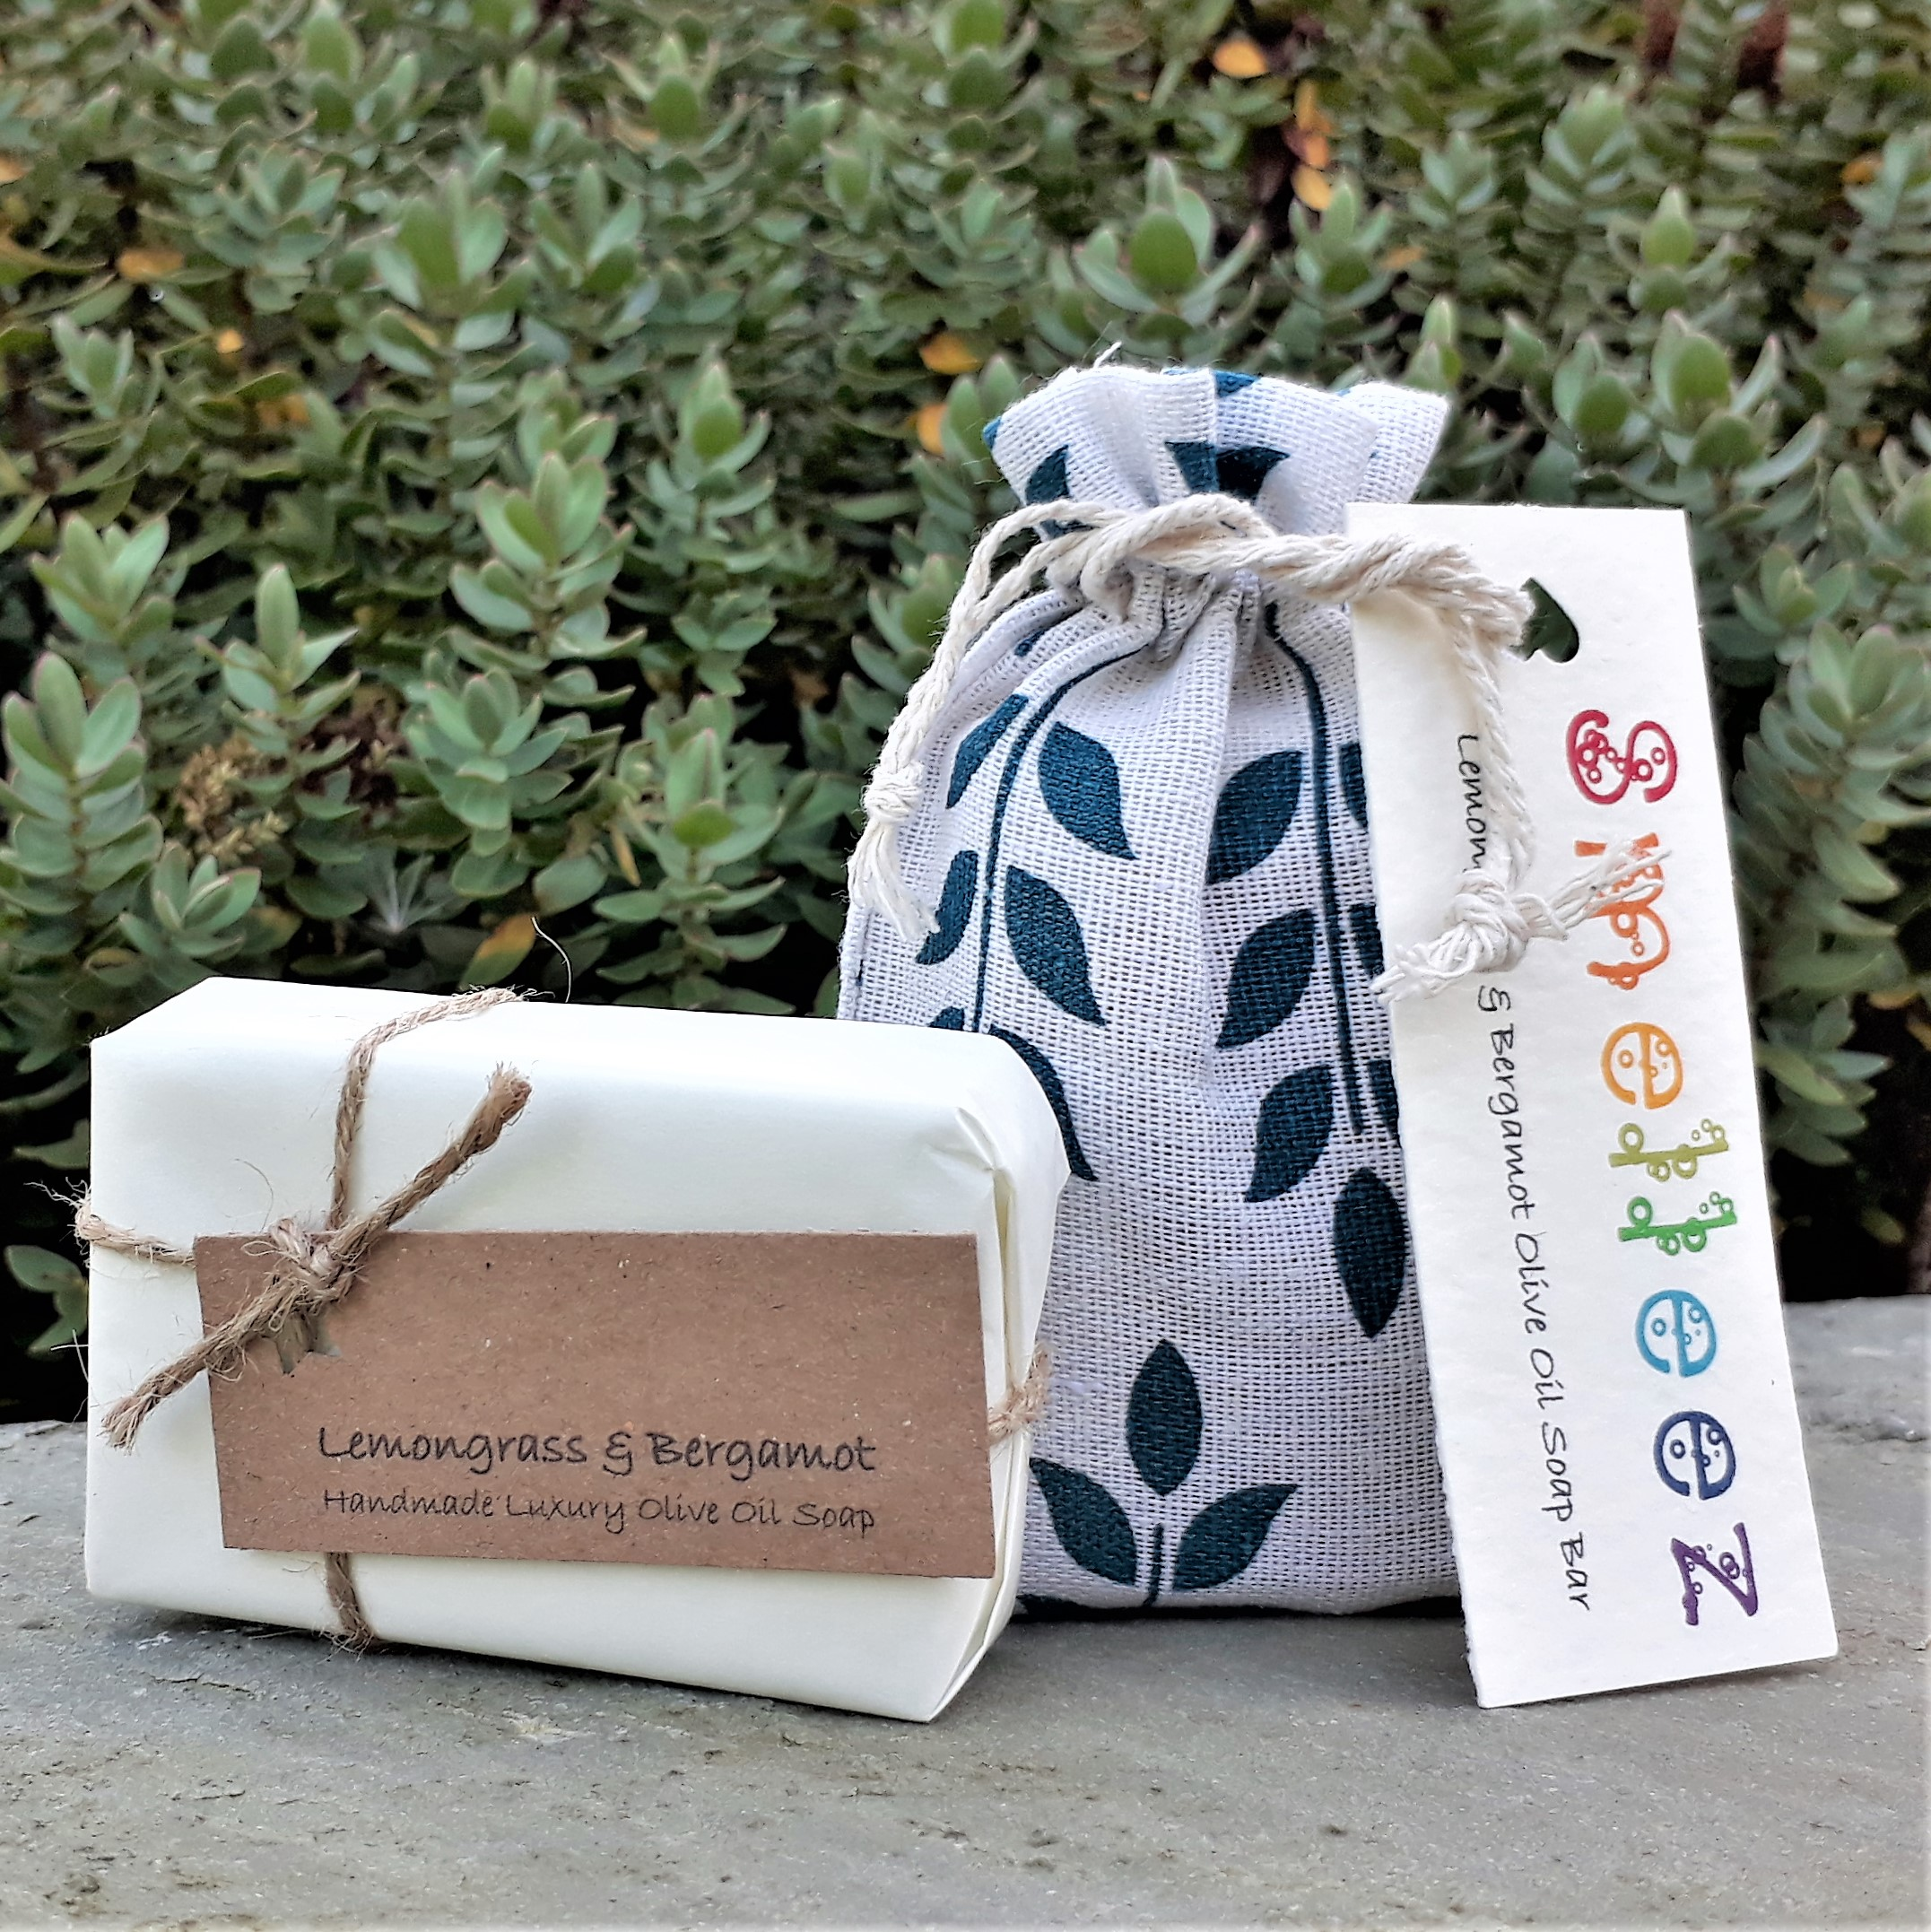 Lemongrass & Bergamot Gift Bag